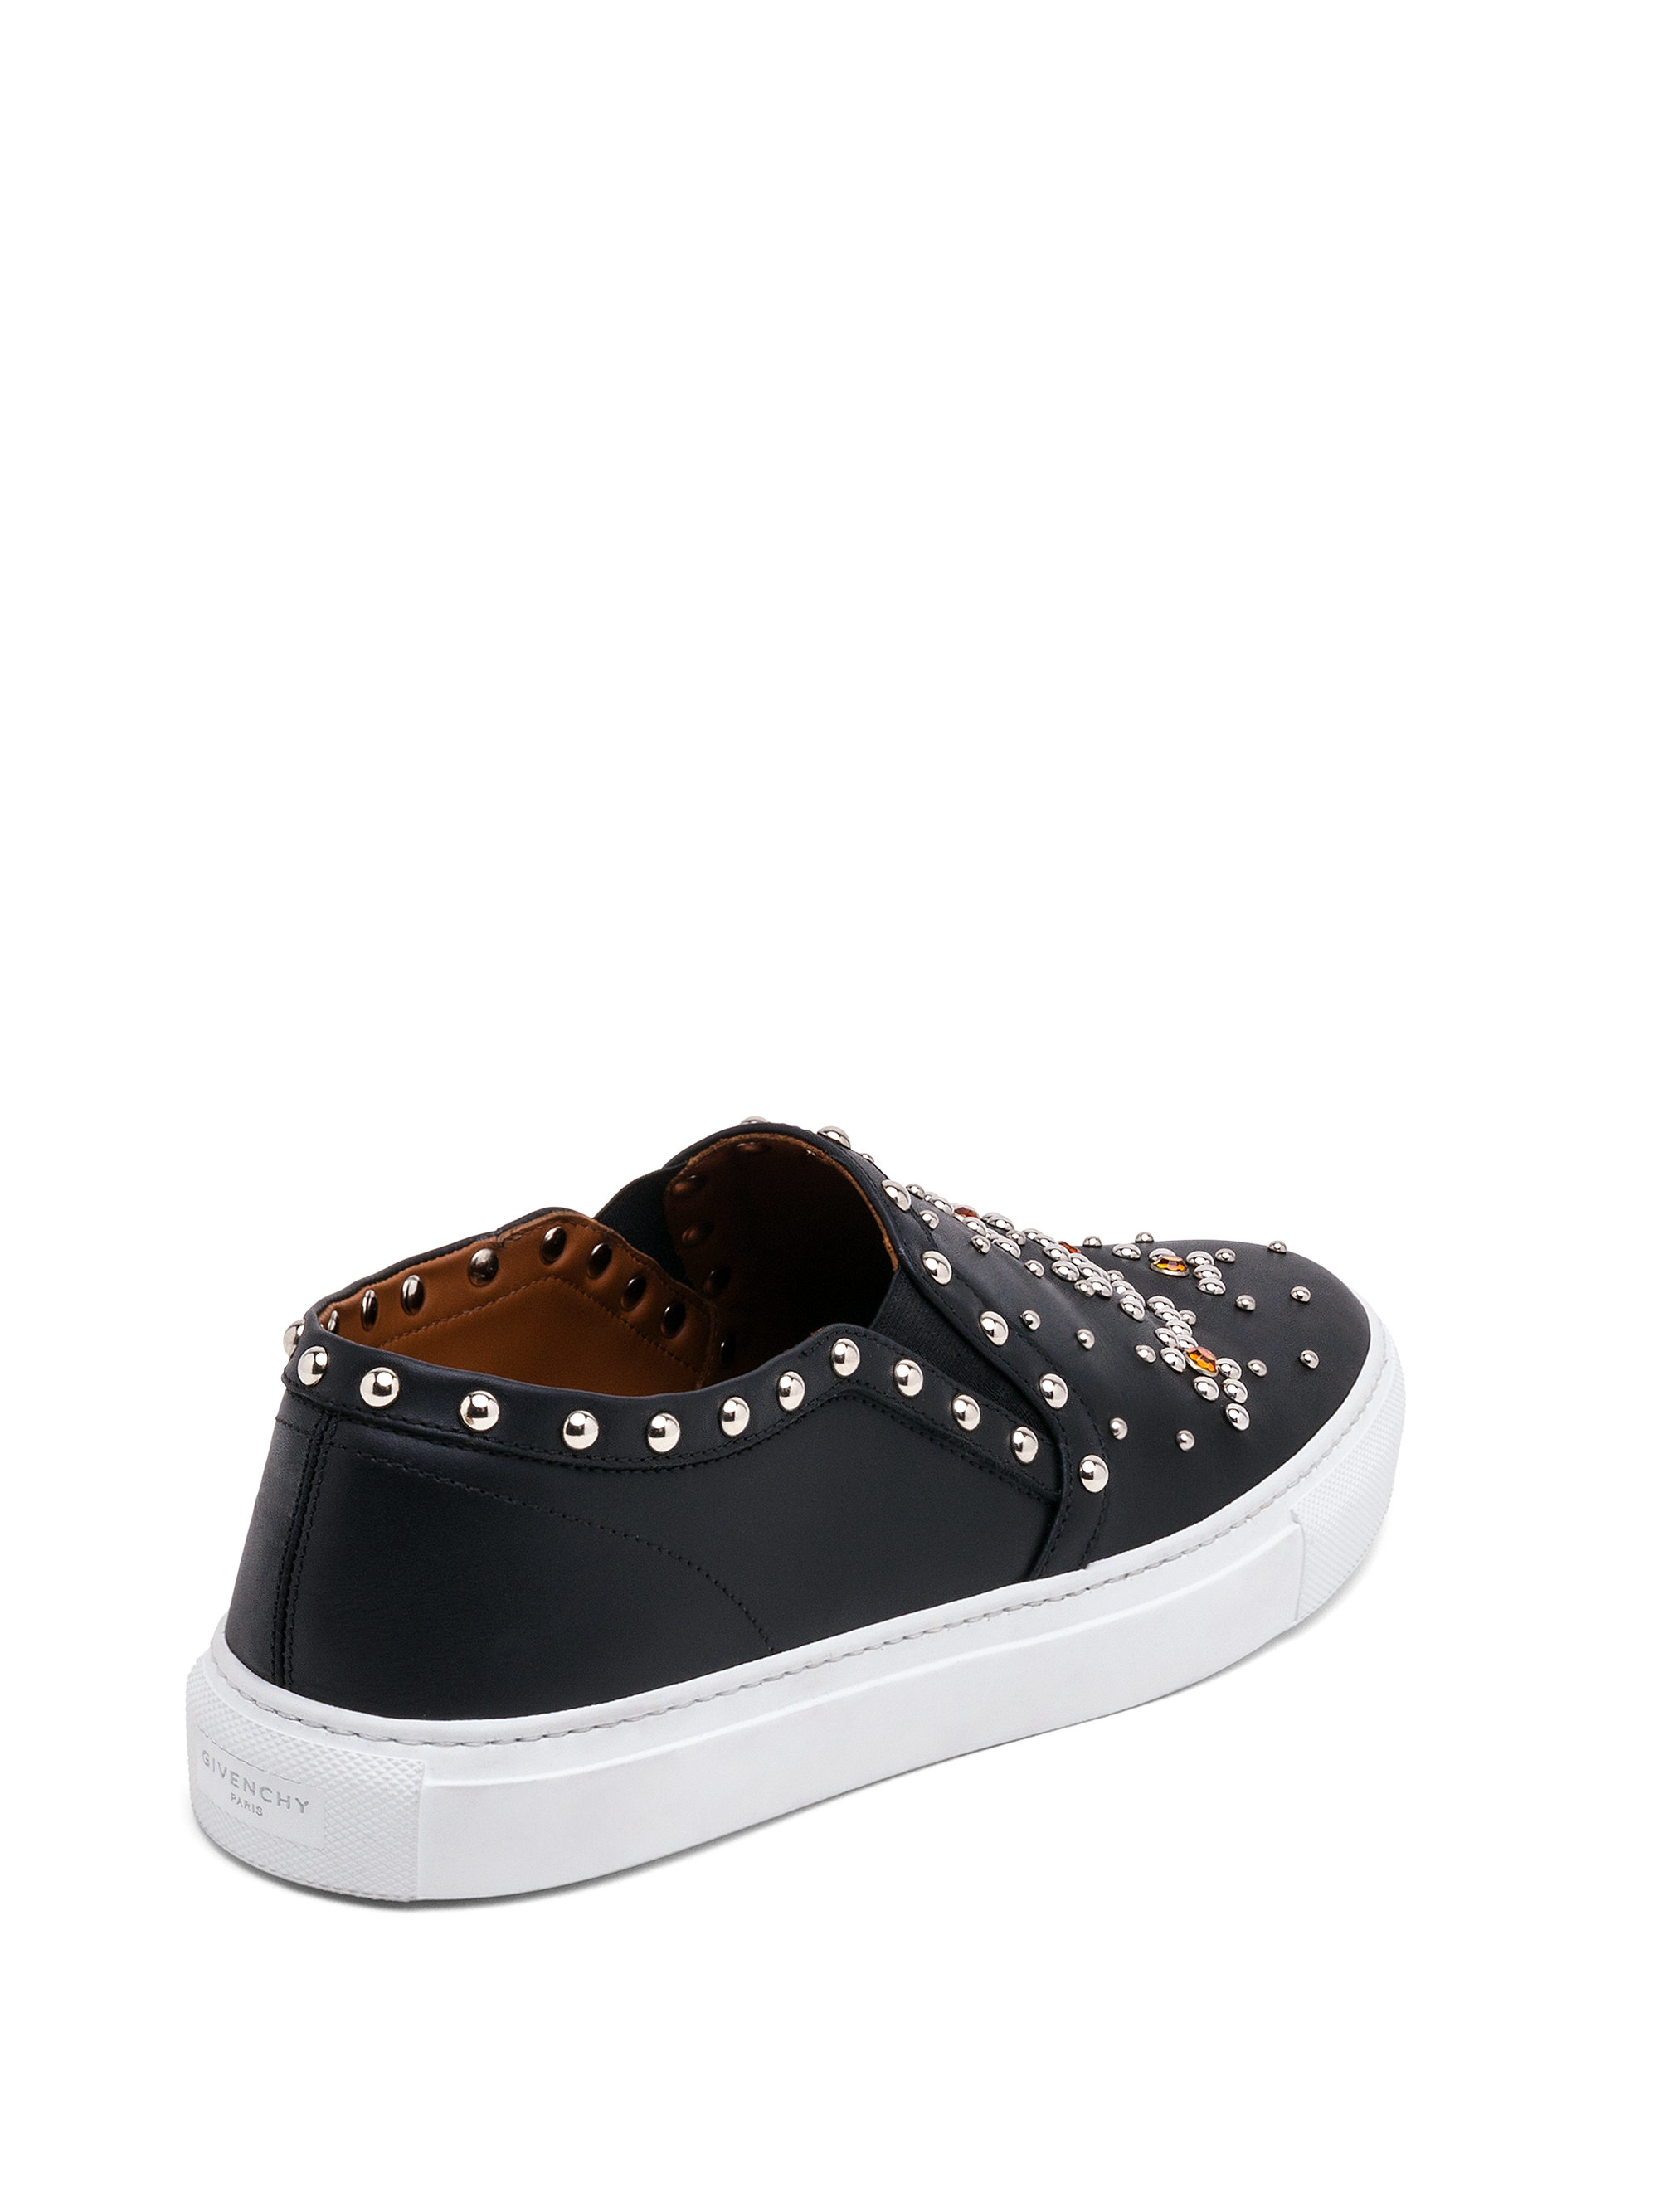 Givenchy Studded slip